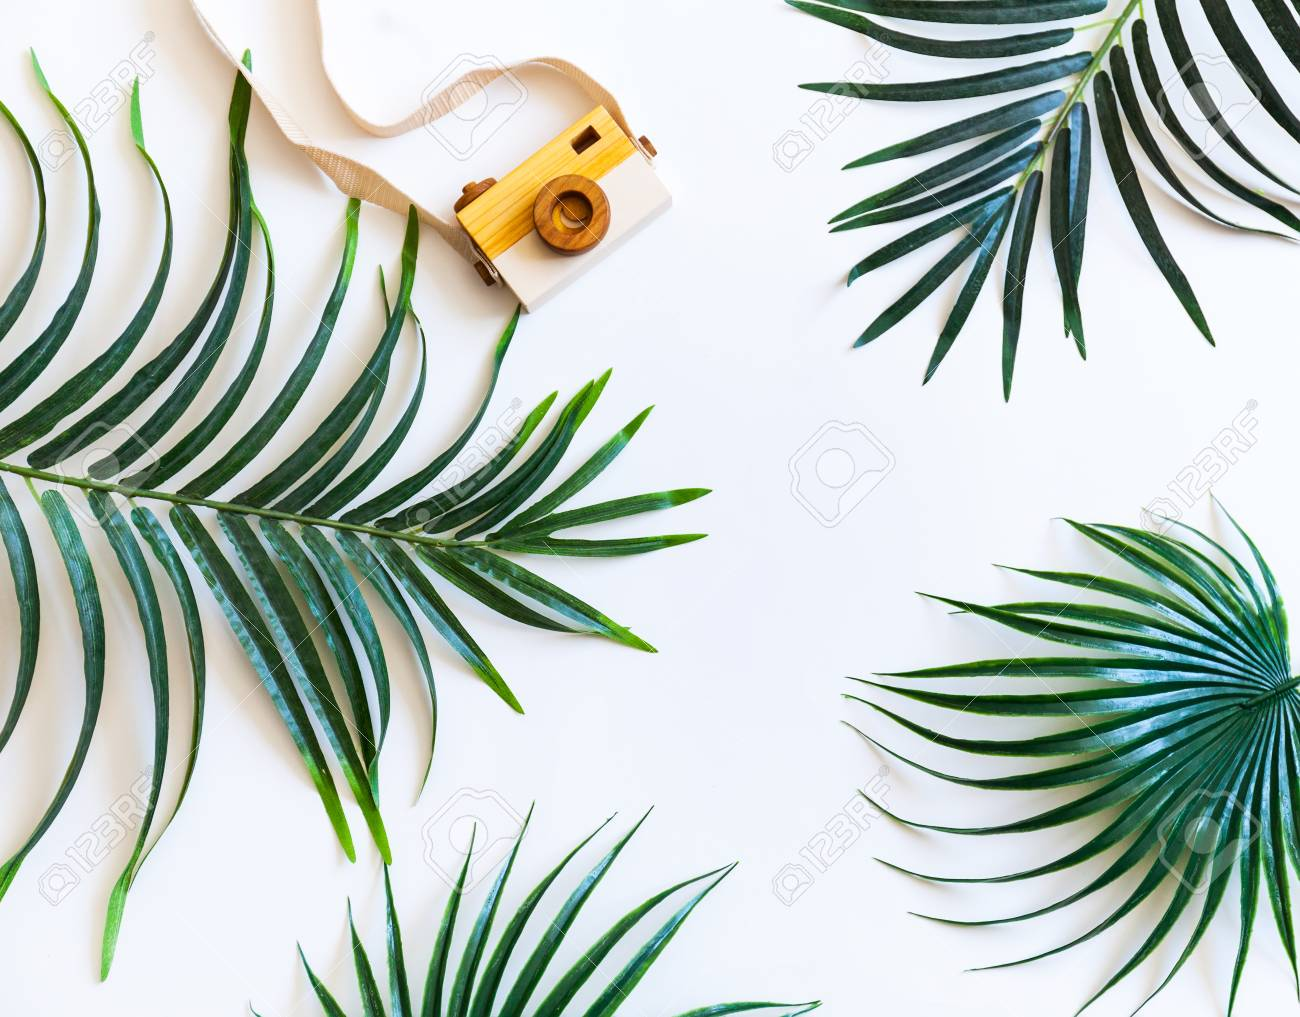 96ad25e4 Tropical palm leaf branches on white background with copy space for text.  Travel vacation concept. Summer background. Flat lay, top view.